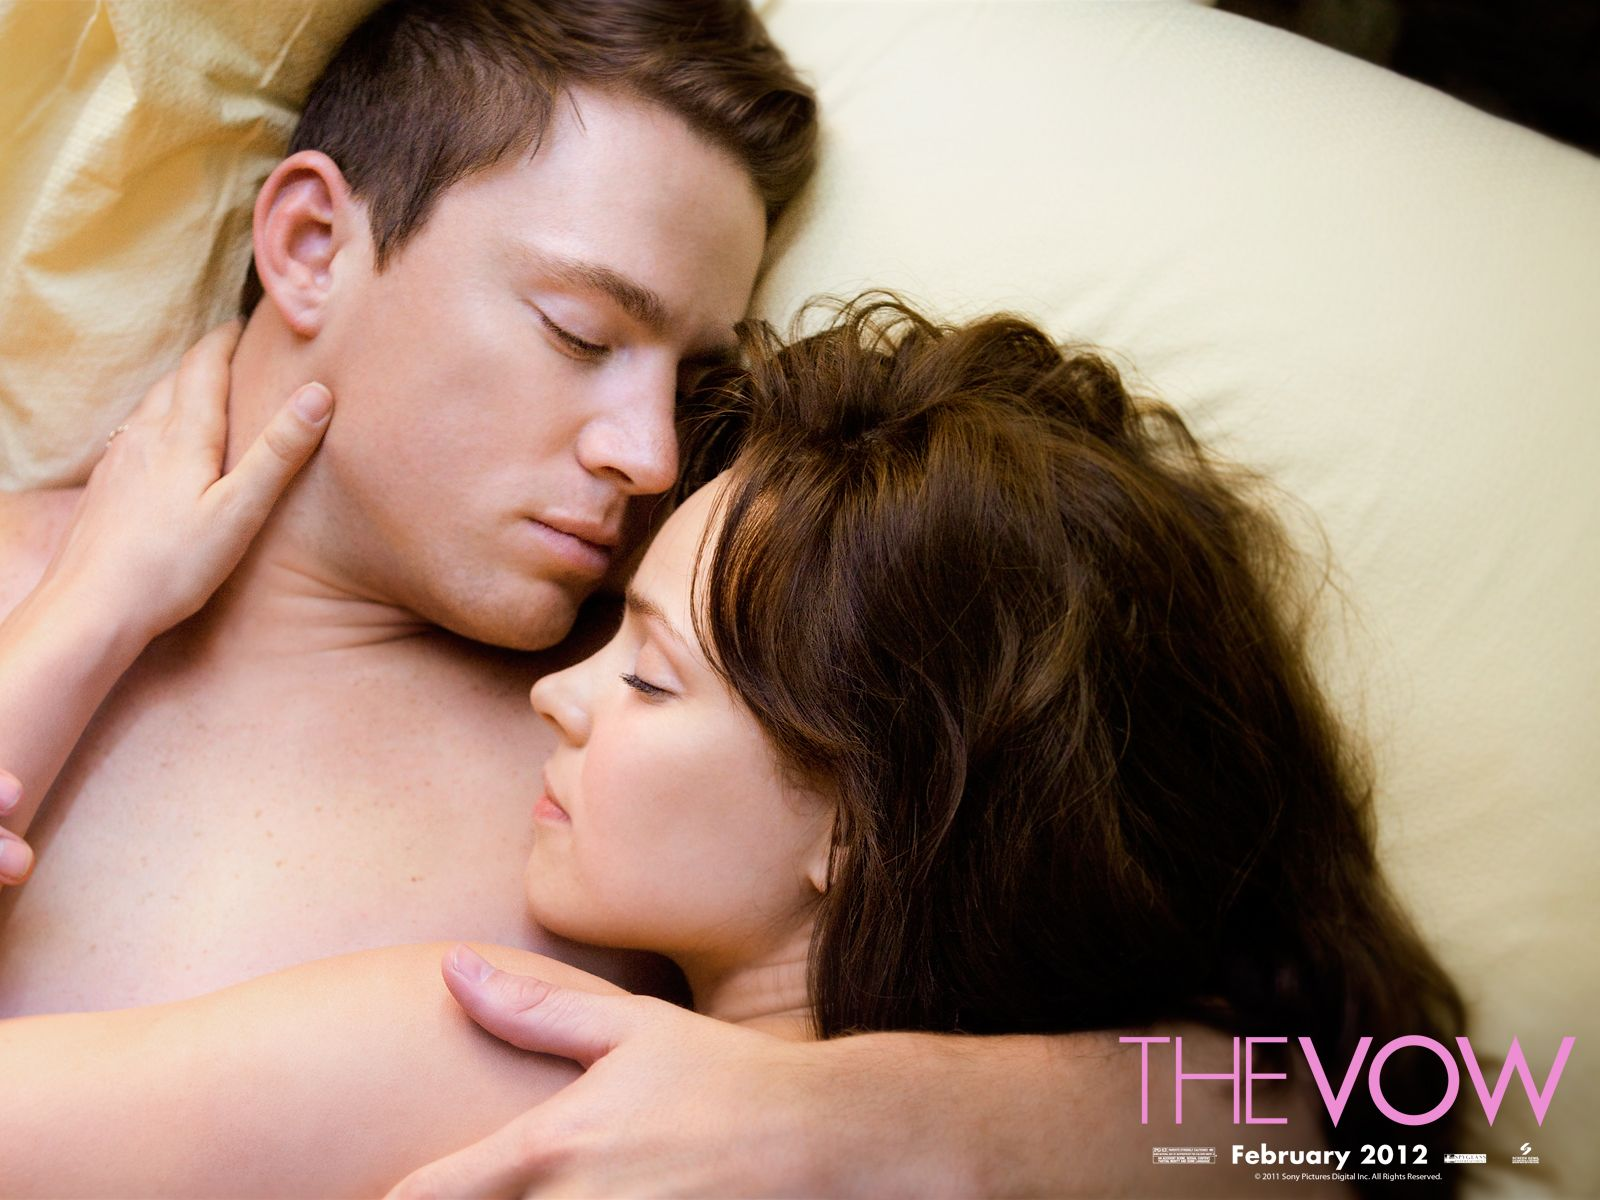 http://2.bp.blogspot.com/-OocrC3RTciQ/T2g4A7cQQ7I/AAAAAAAACwU/FVh-wEaPjW0/s1600/The+Vow+2012+film+movie+wallpaper+bed+love+sex+scene.jpg